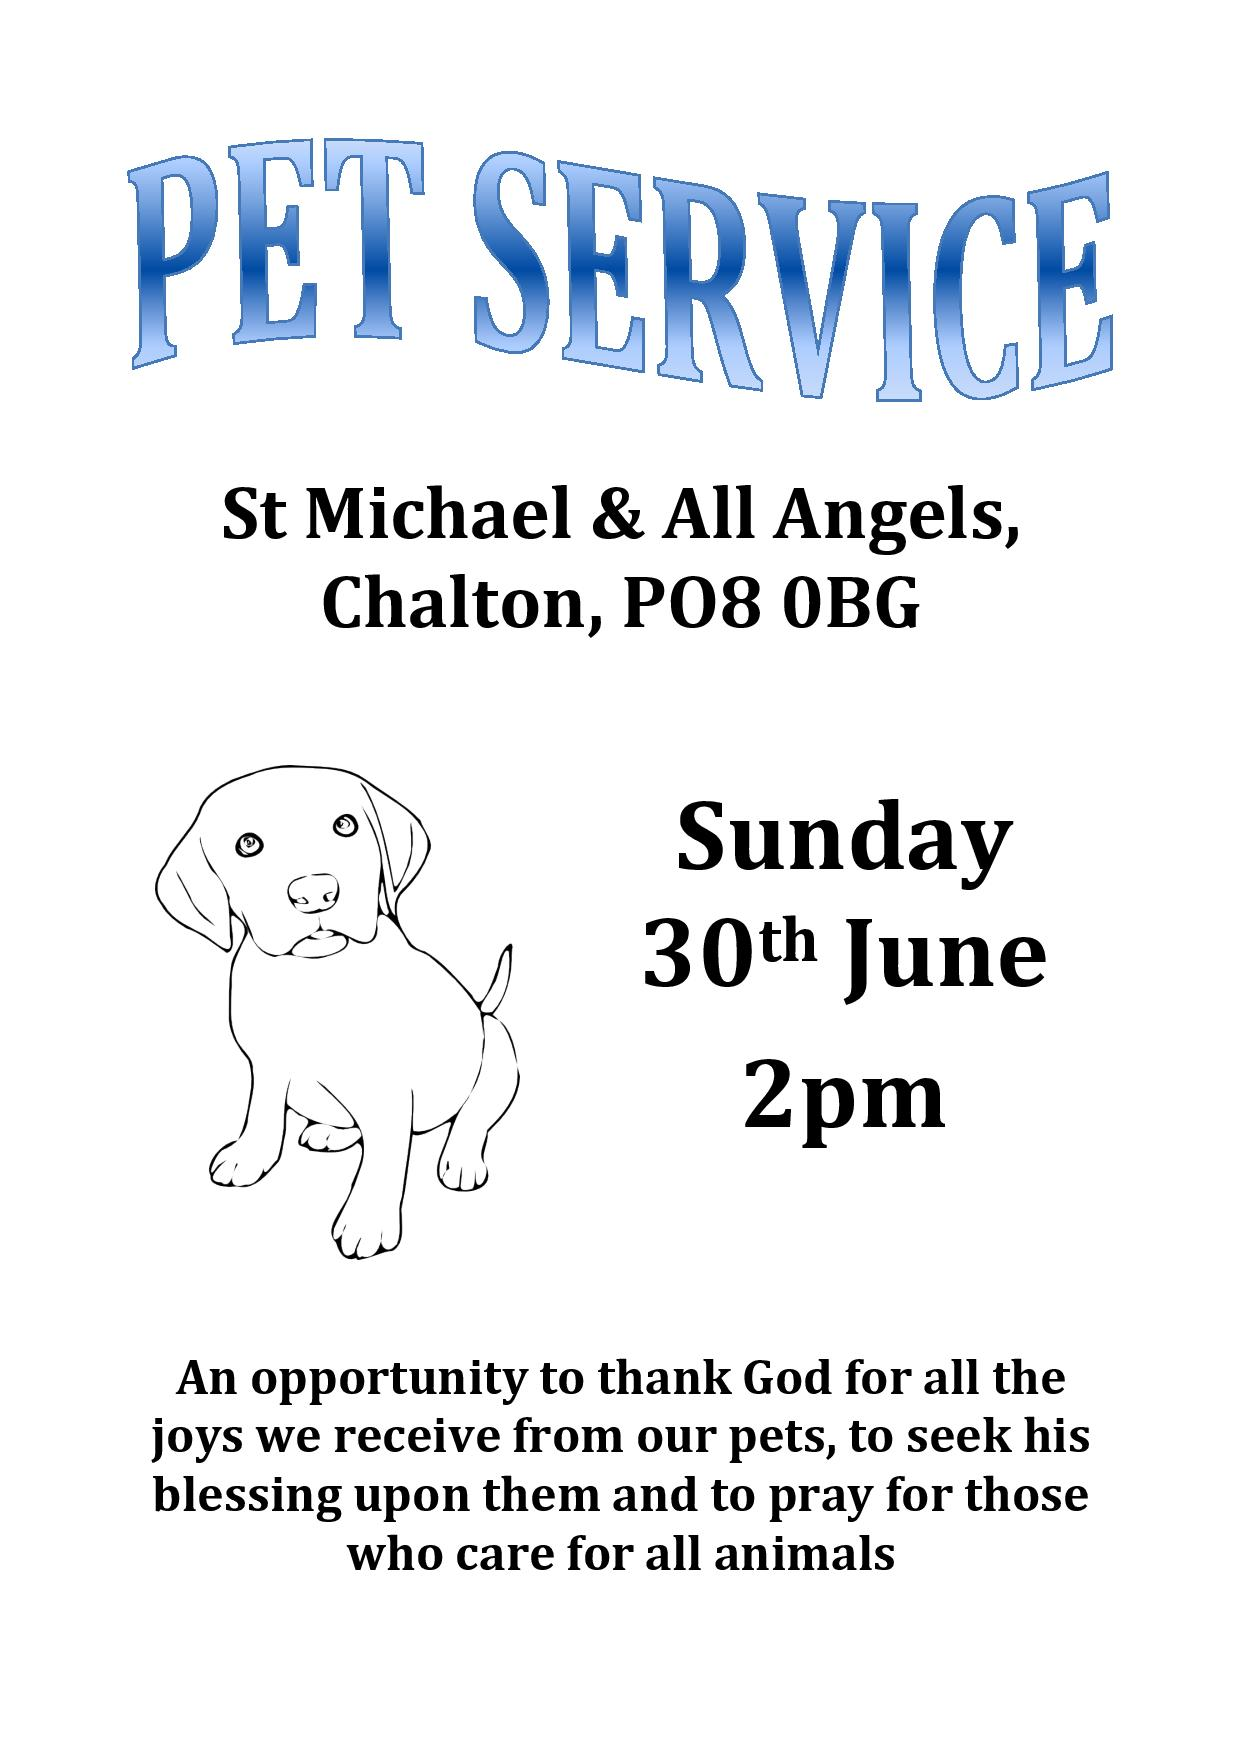 St Michael's Church, Pet Service